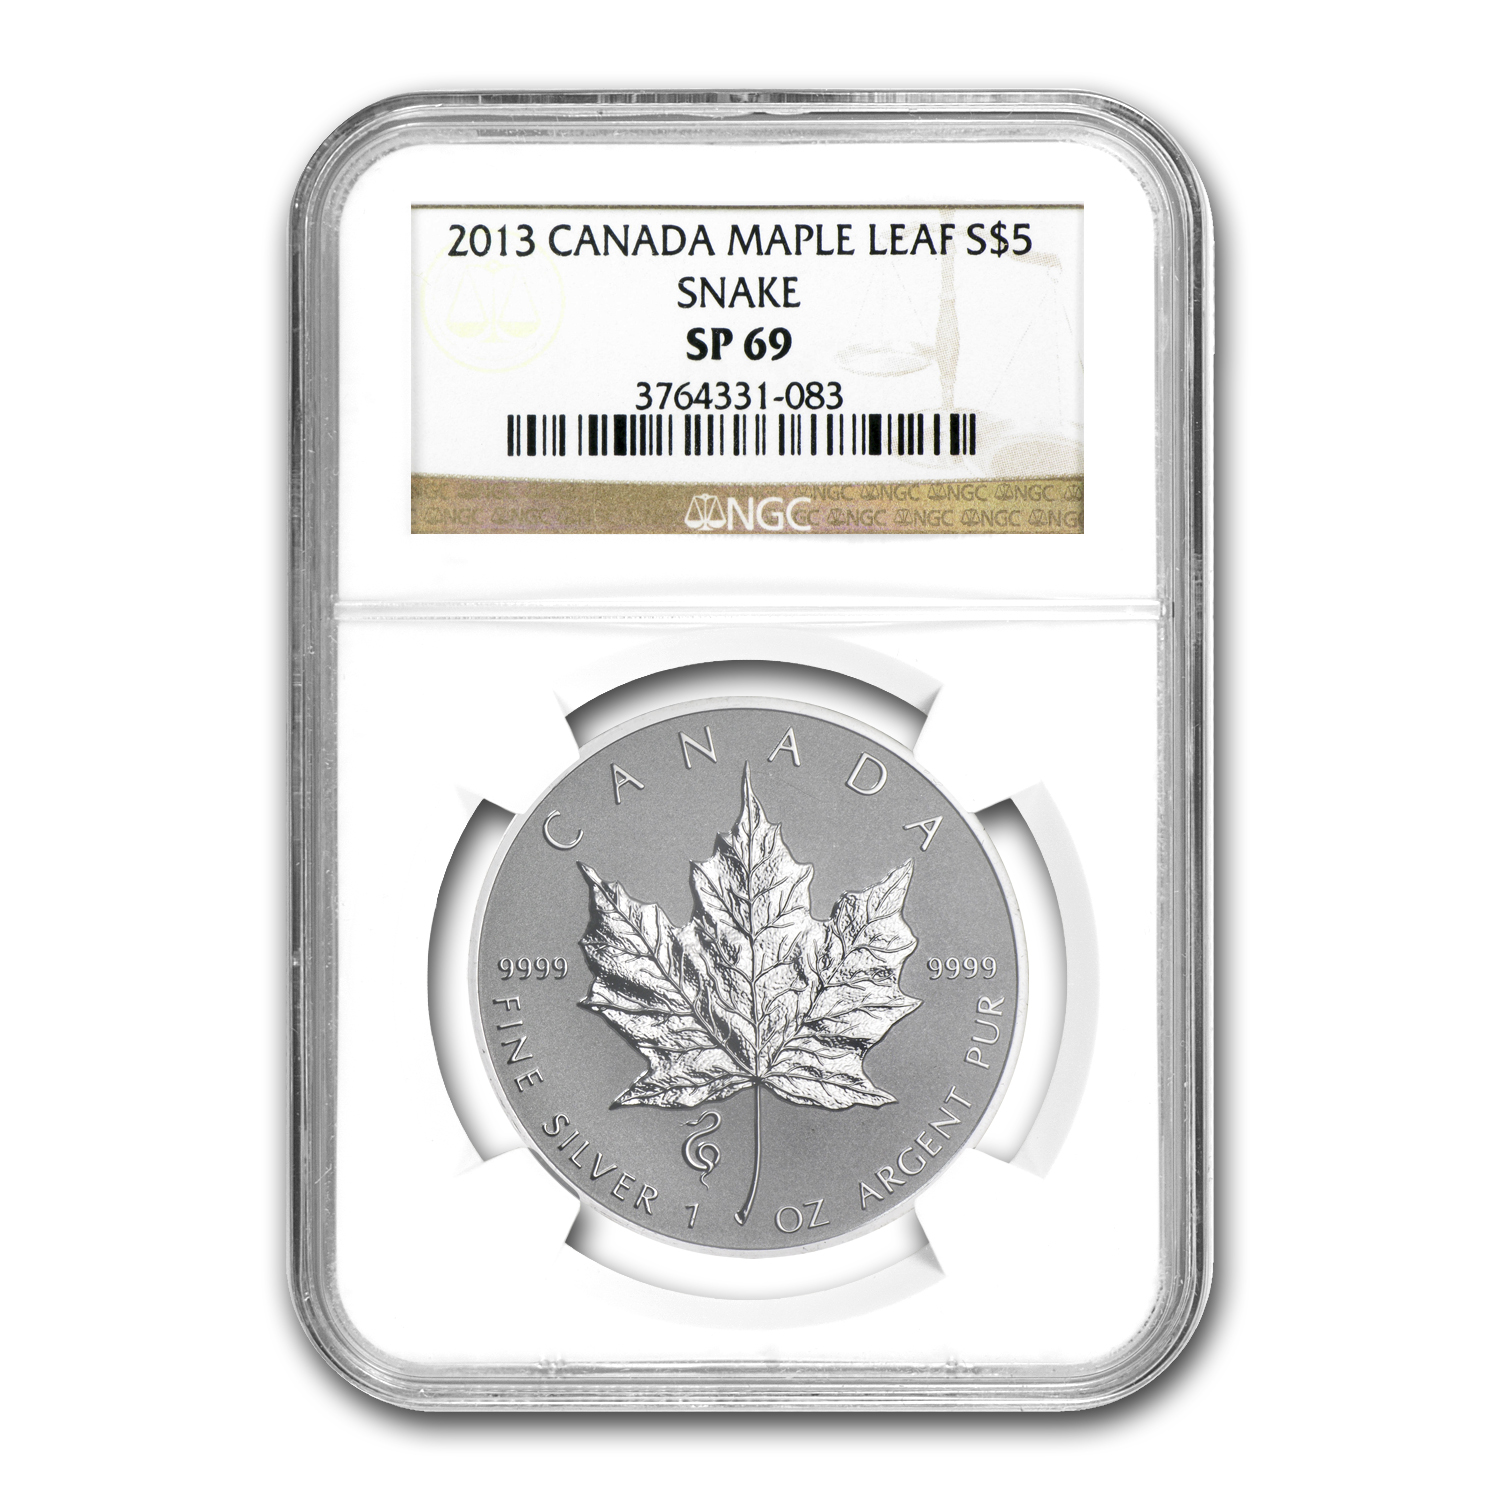 2013 Canada 1 oz Silver Maple Leaf Snake Privy SP-69 NGC